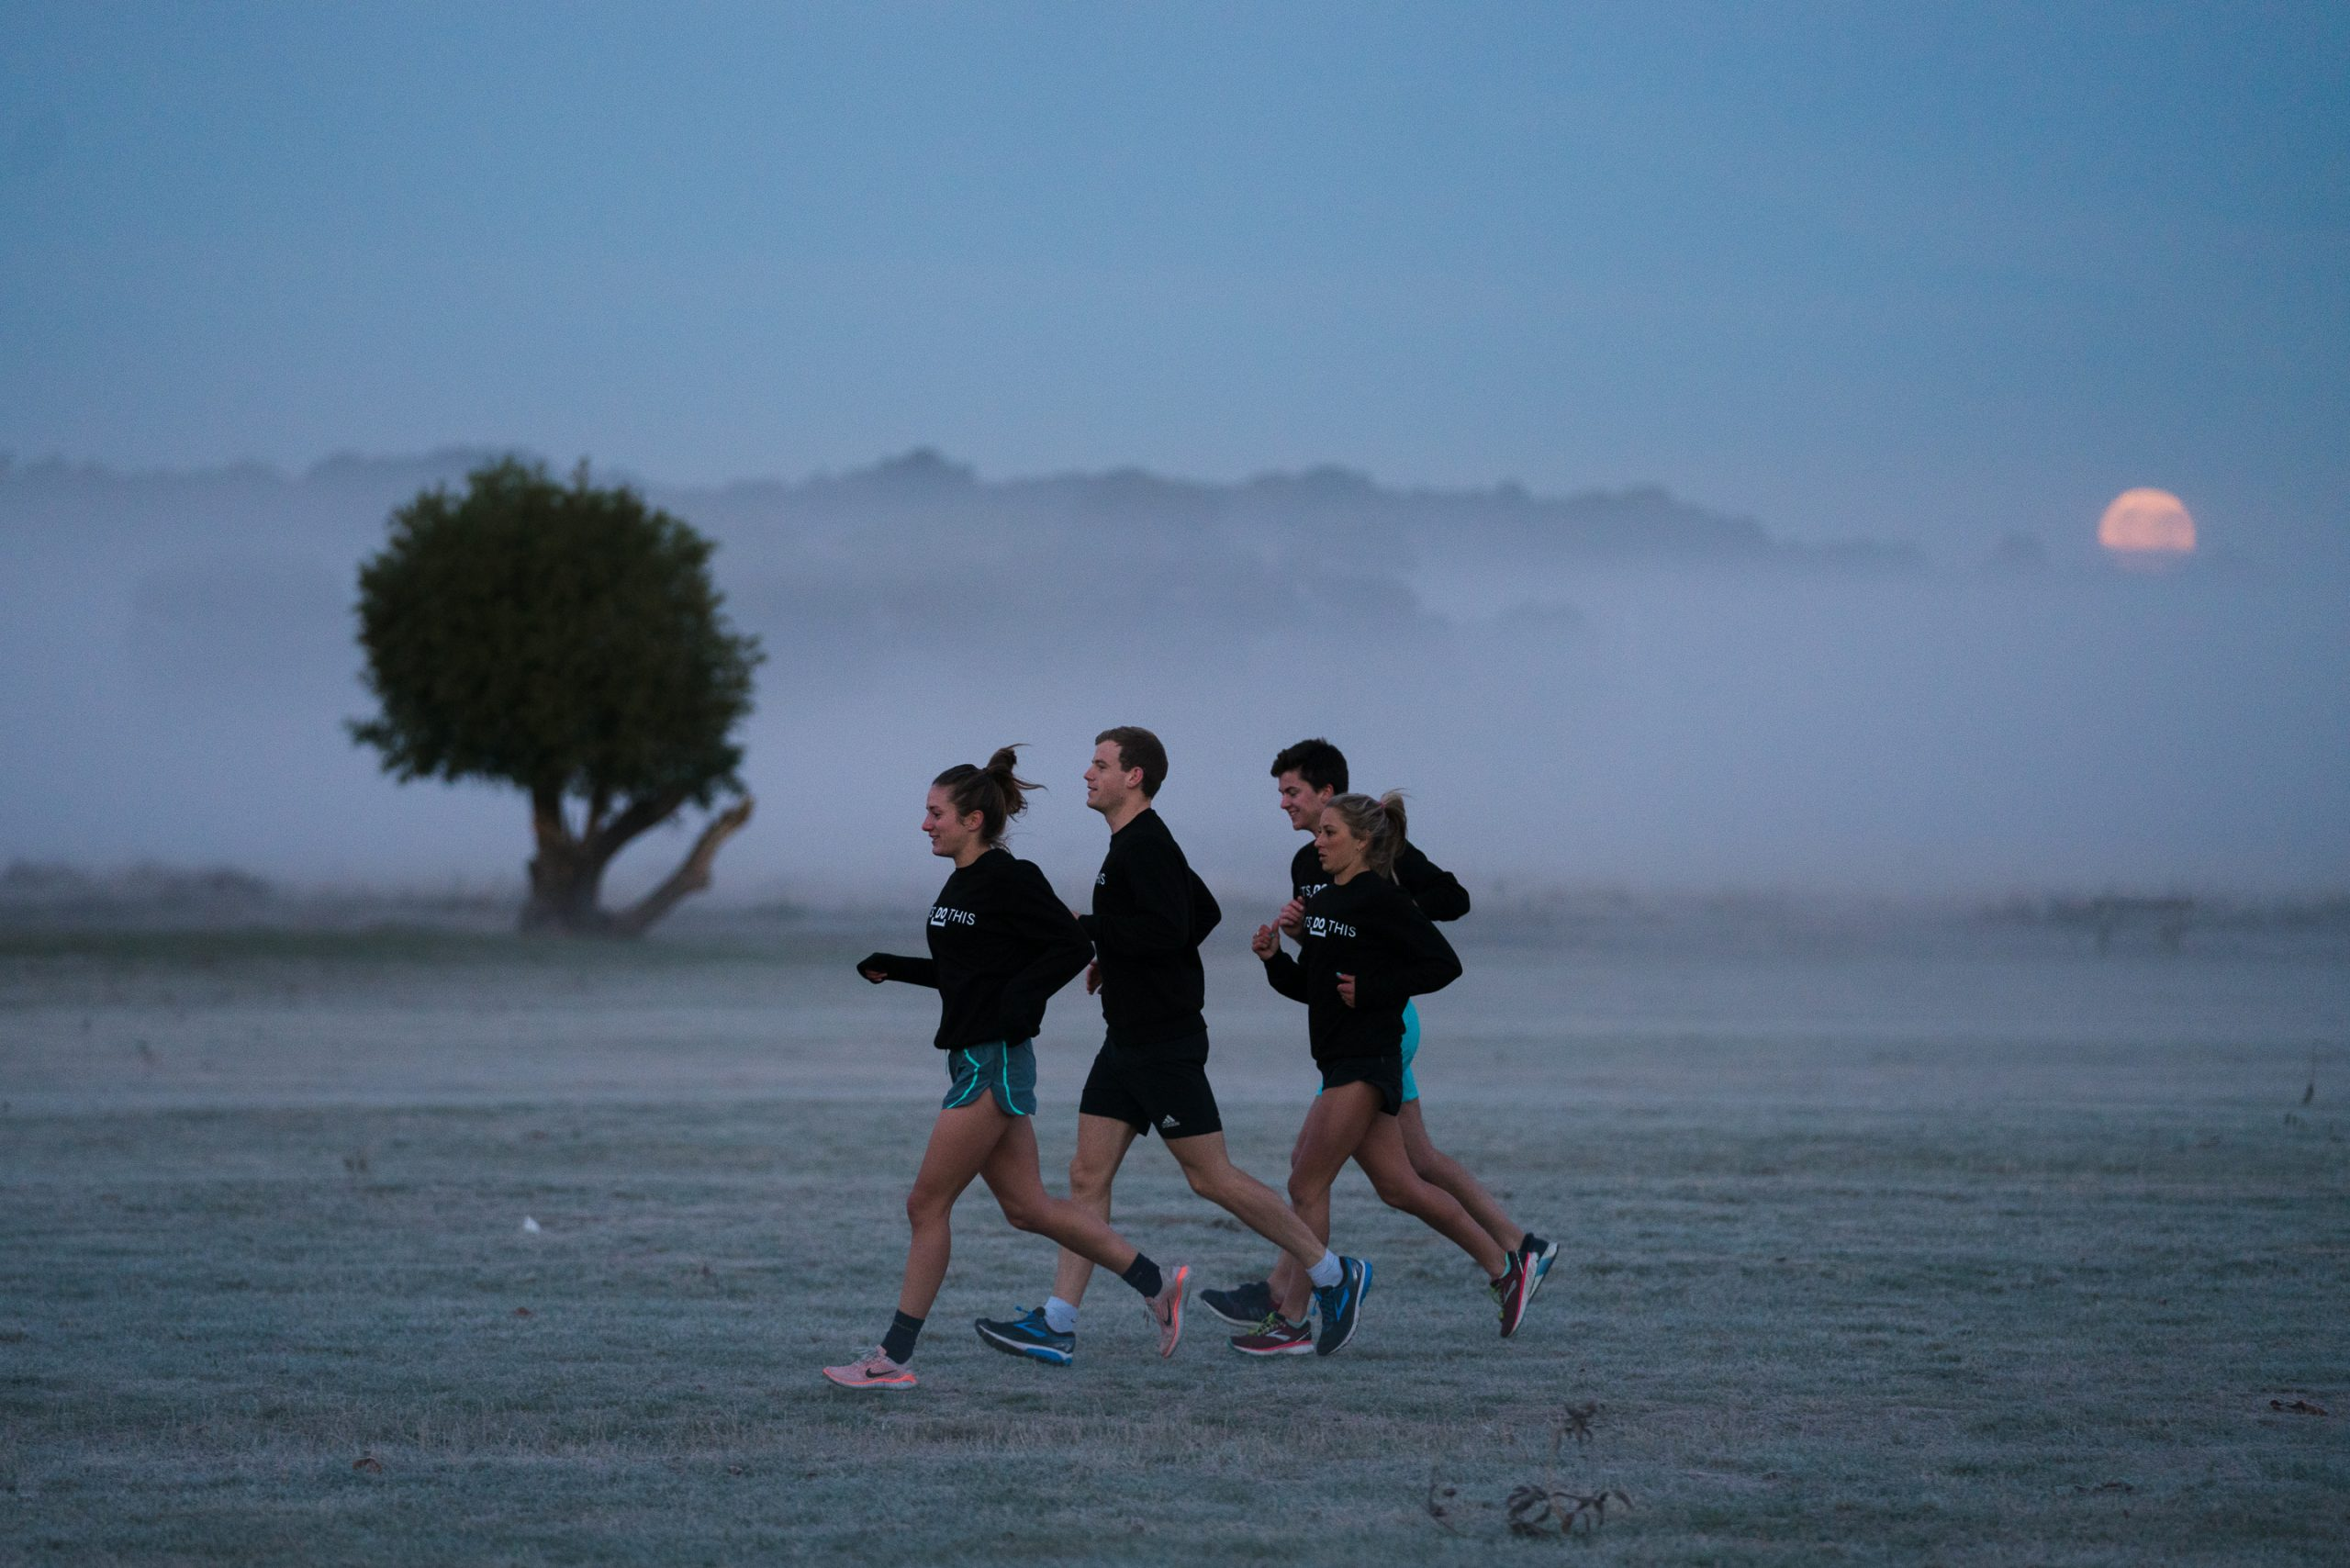 4 people on a morning run